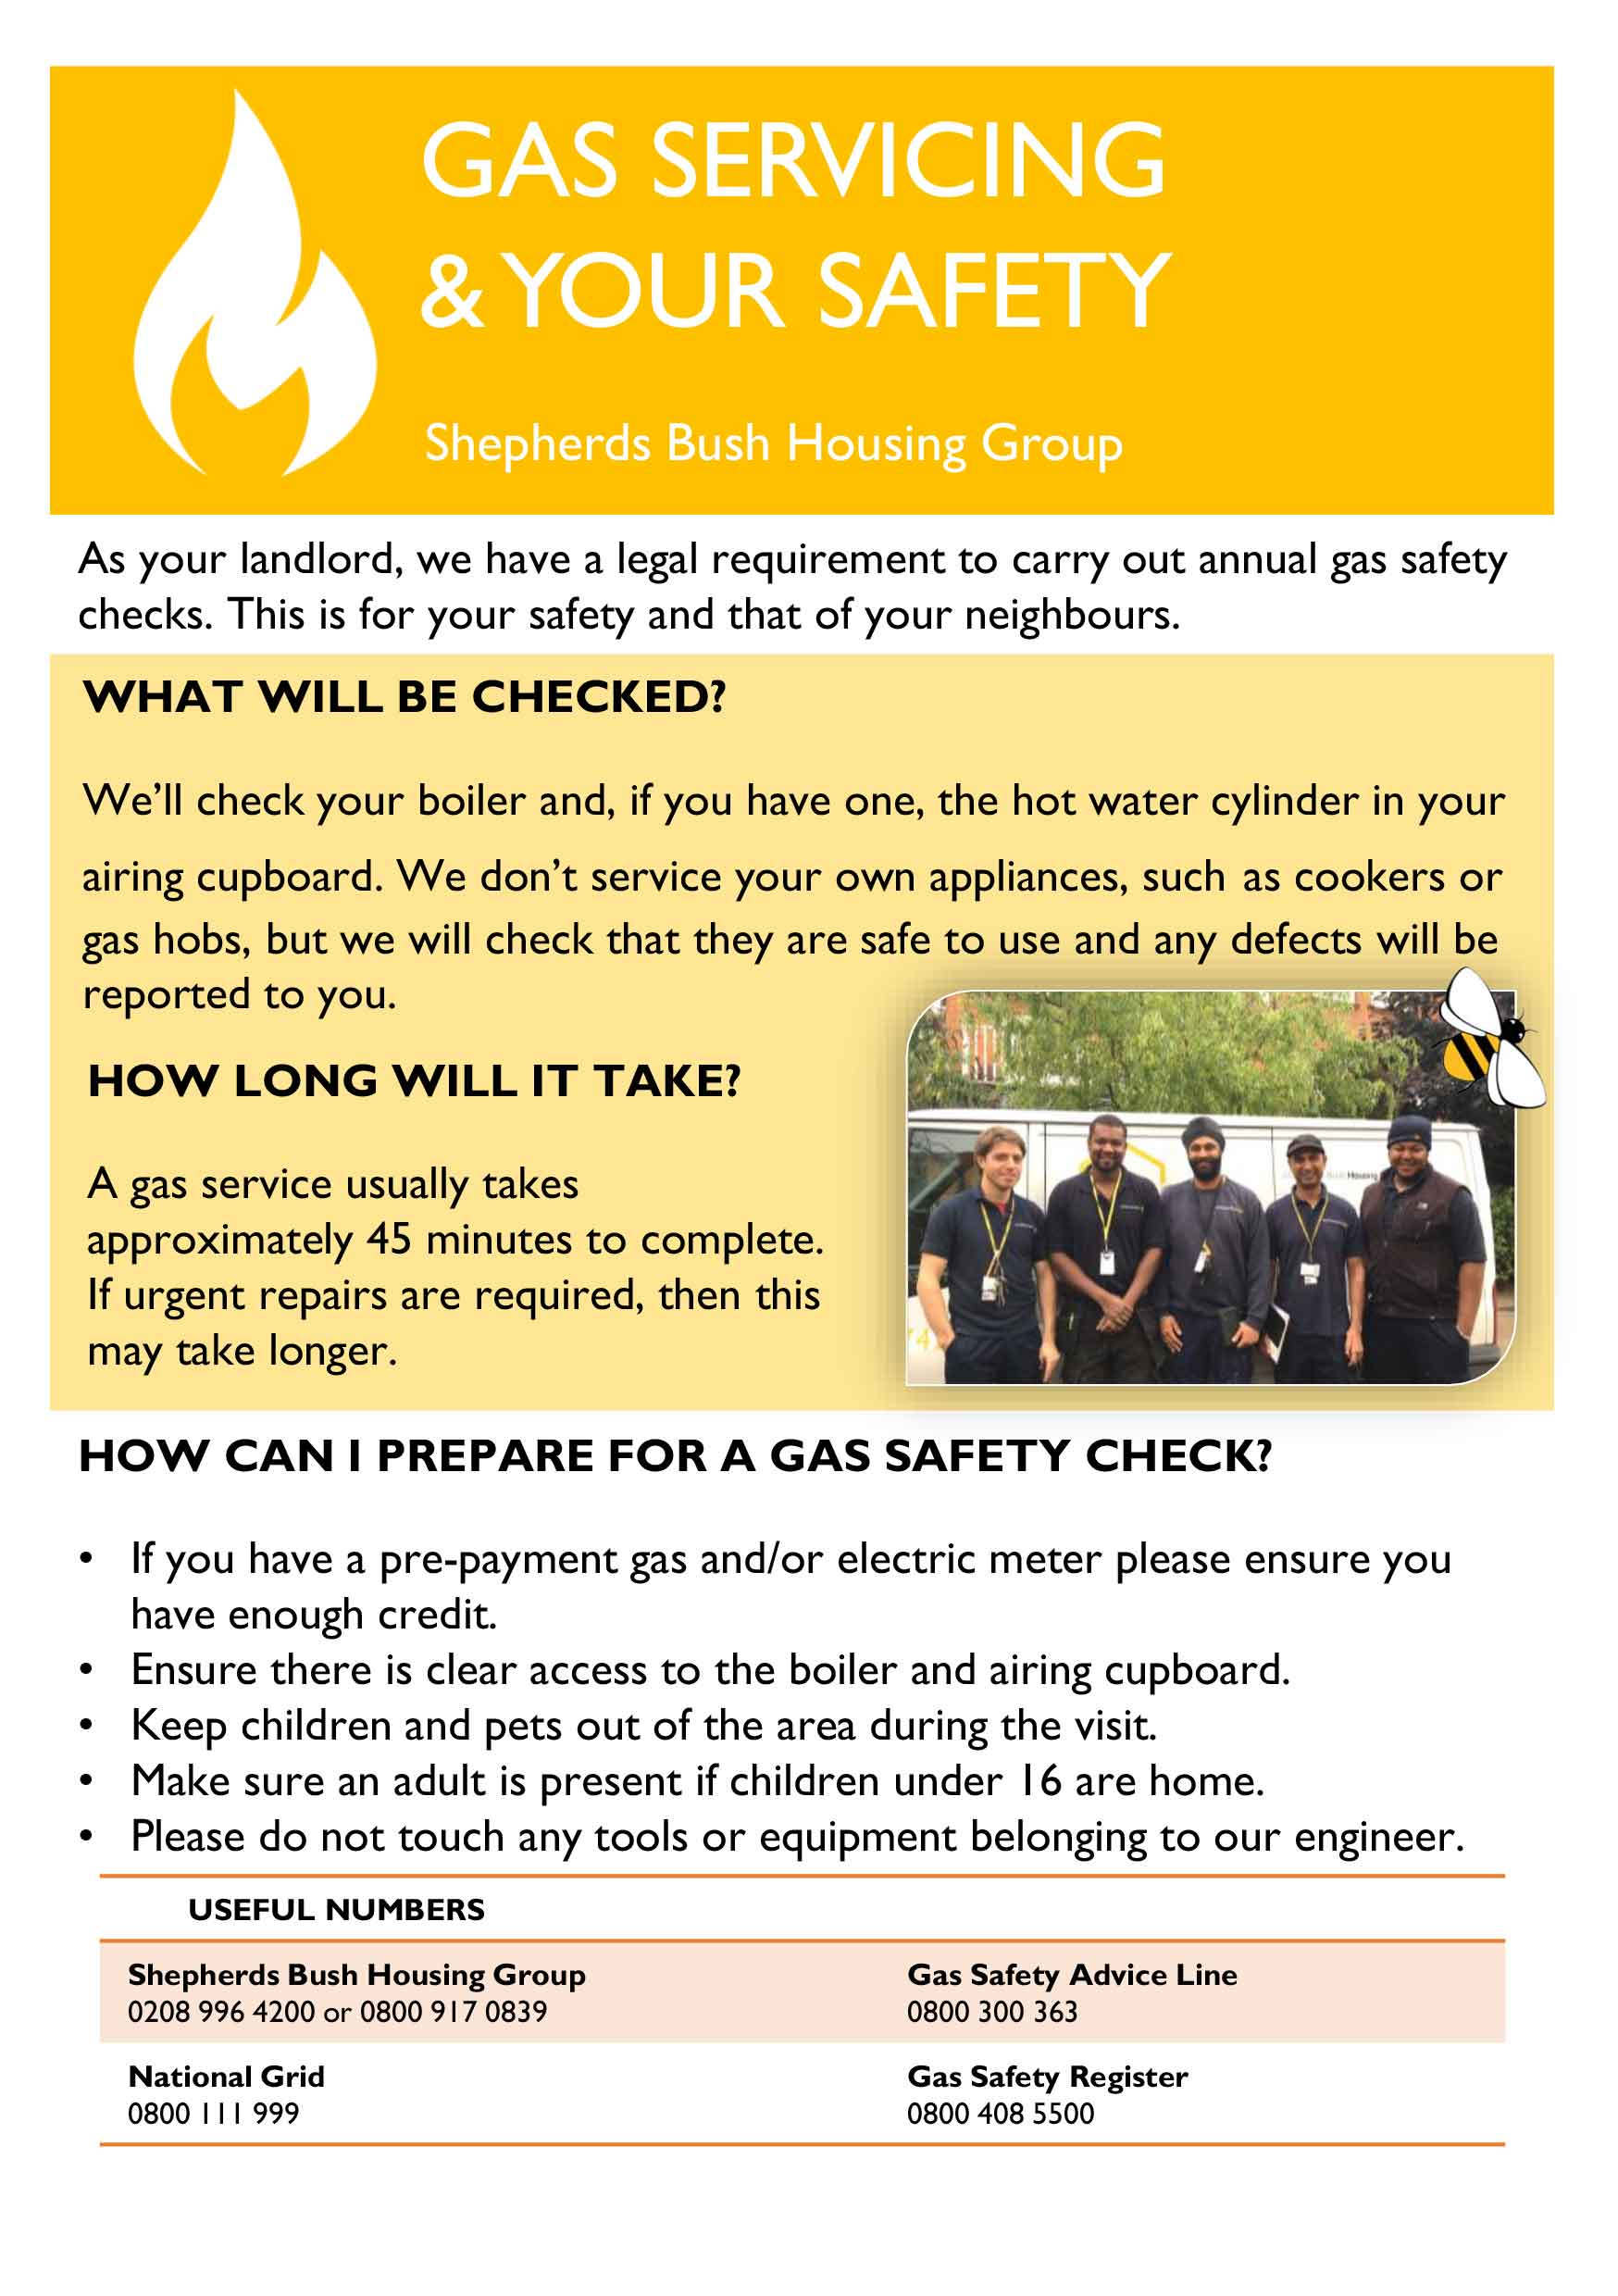 Gas safety leaflet cover